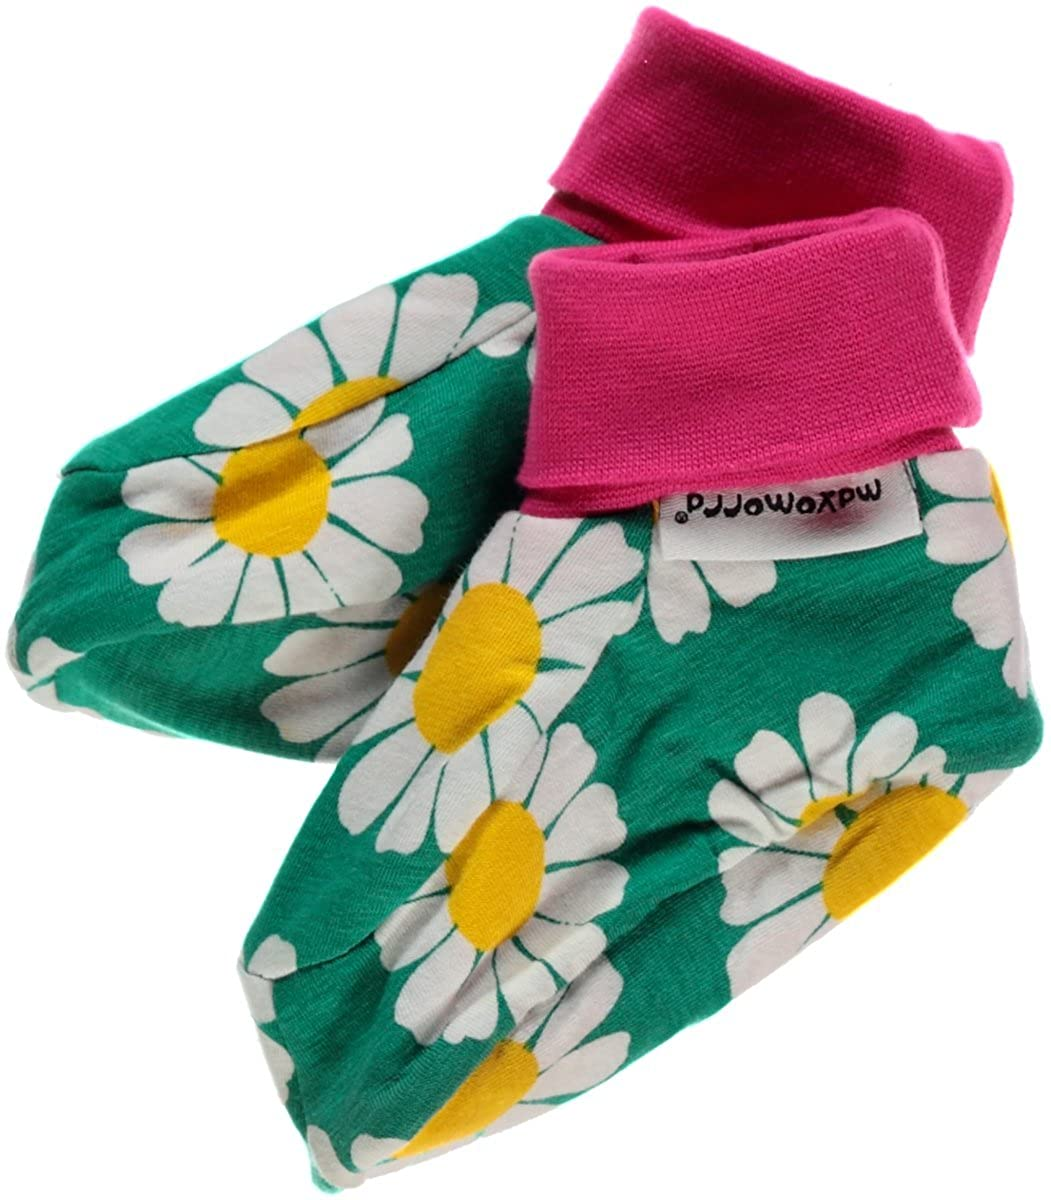 0-6 Months Maxomorra Unisex Baby Footies Daisy Floral Socks Manufacturer Size:50//68 Green